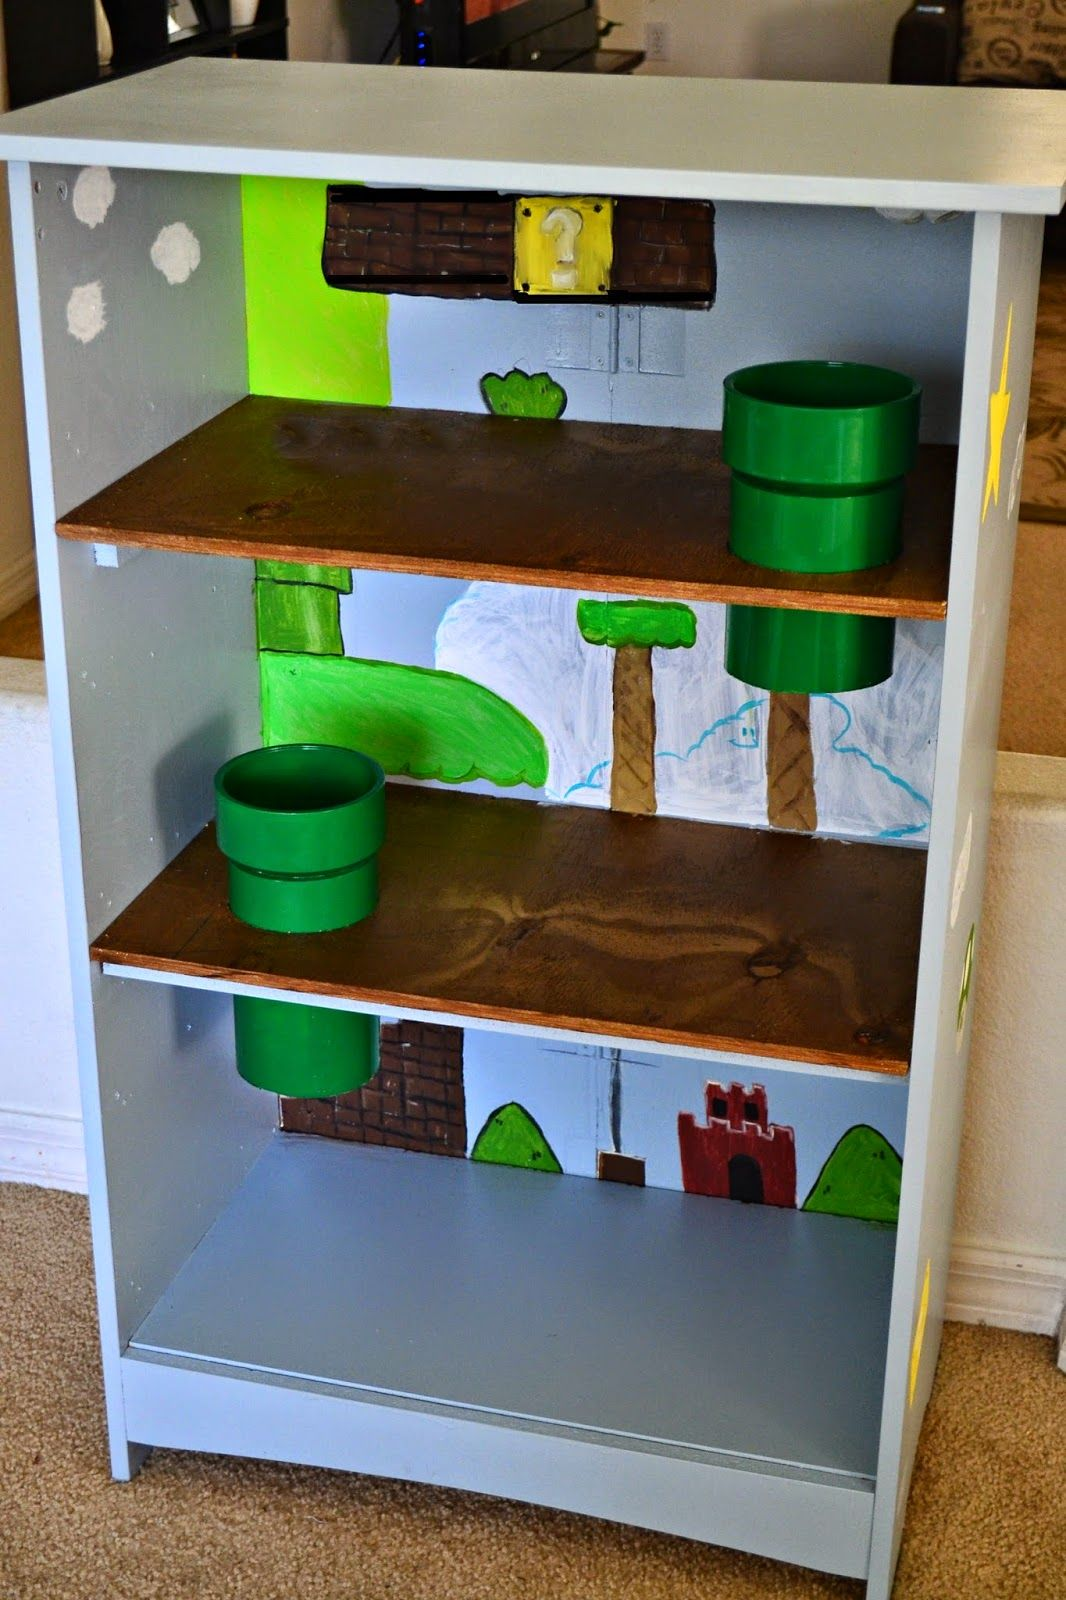 diy mario bros playhouse it 39 s a mom 39 s world posts pinterest kinderzimmer kinderzimmer. Black Bedroom Furniture Sets. Home Design Ideas